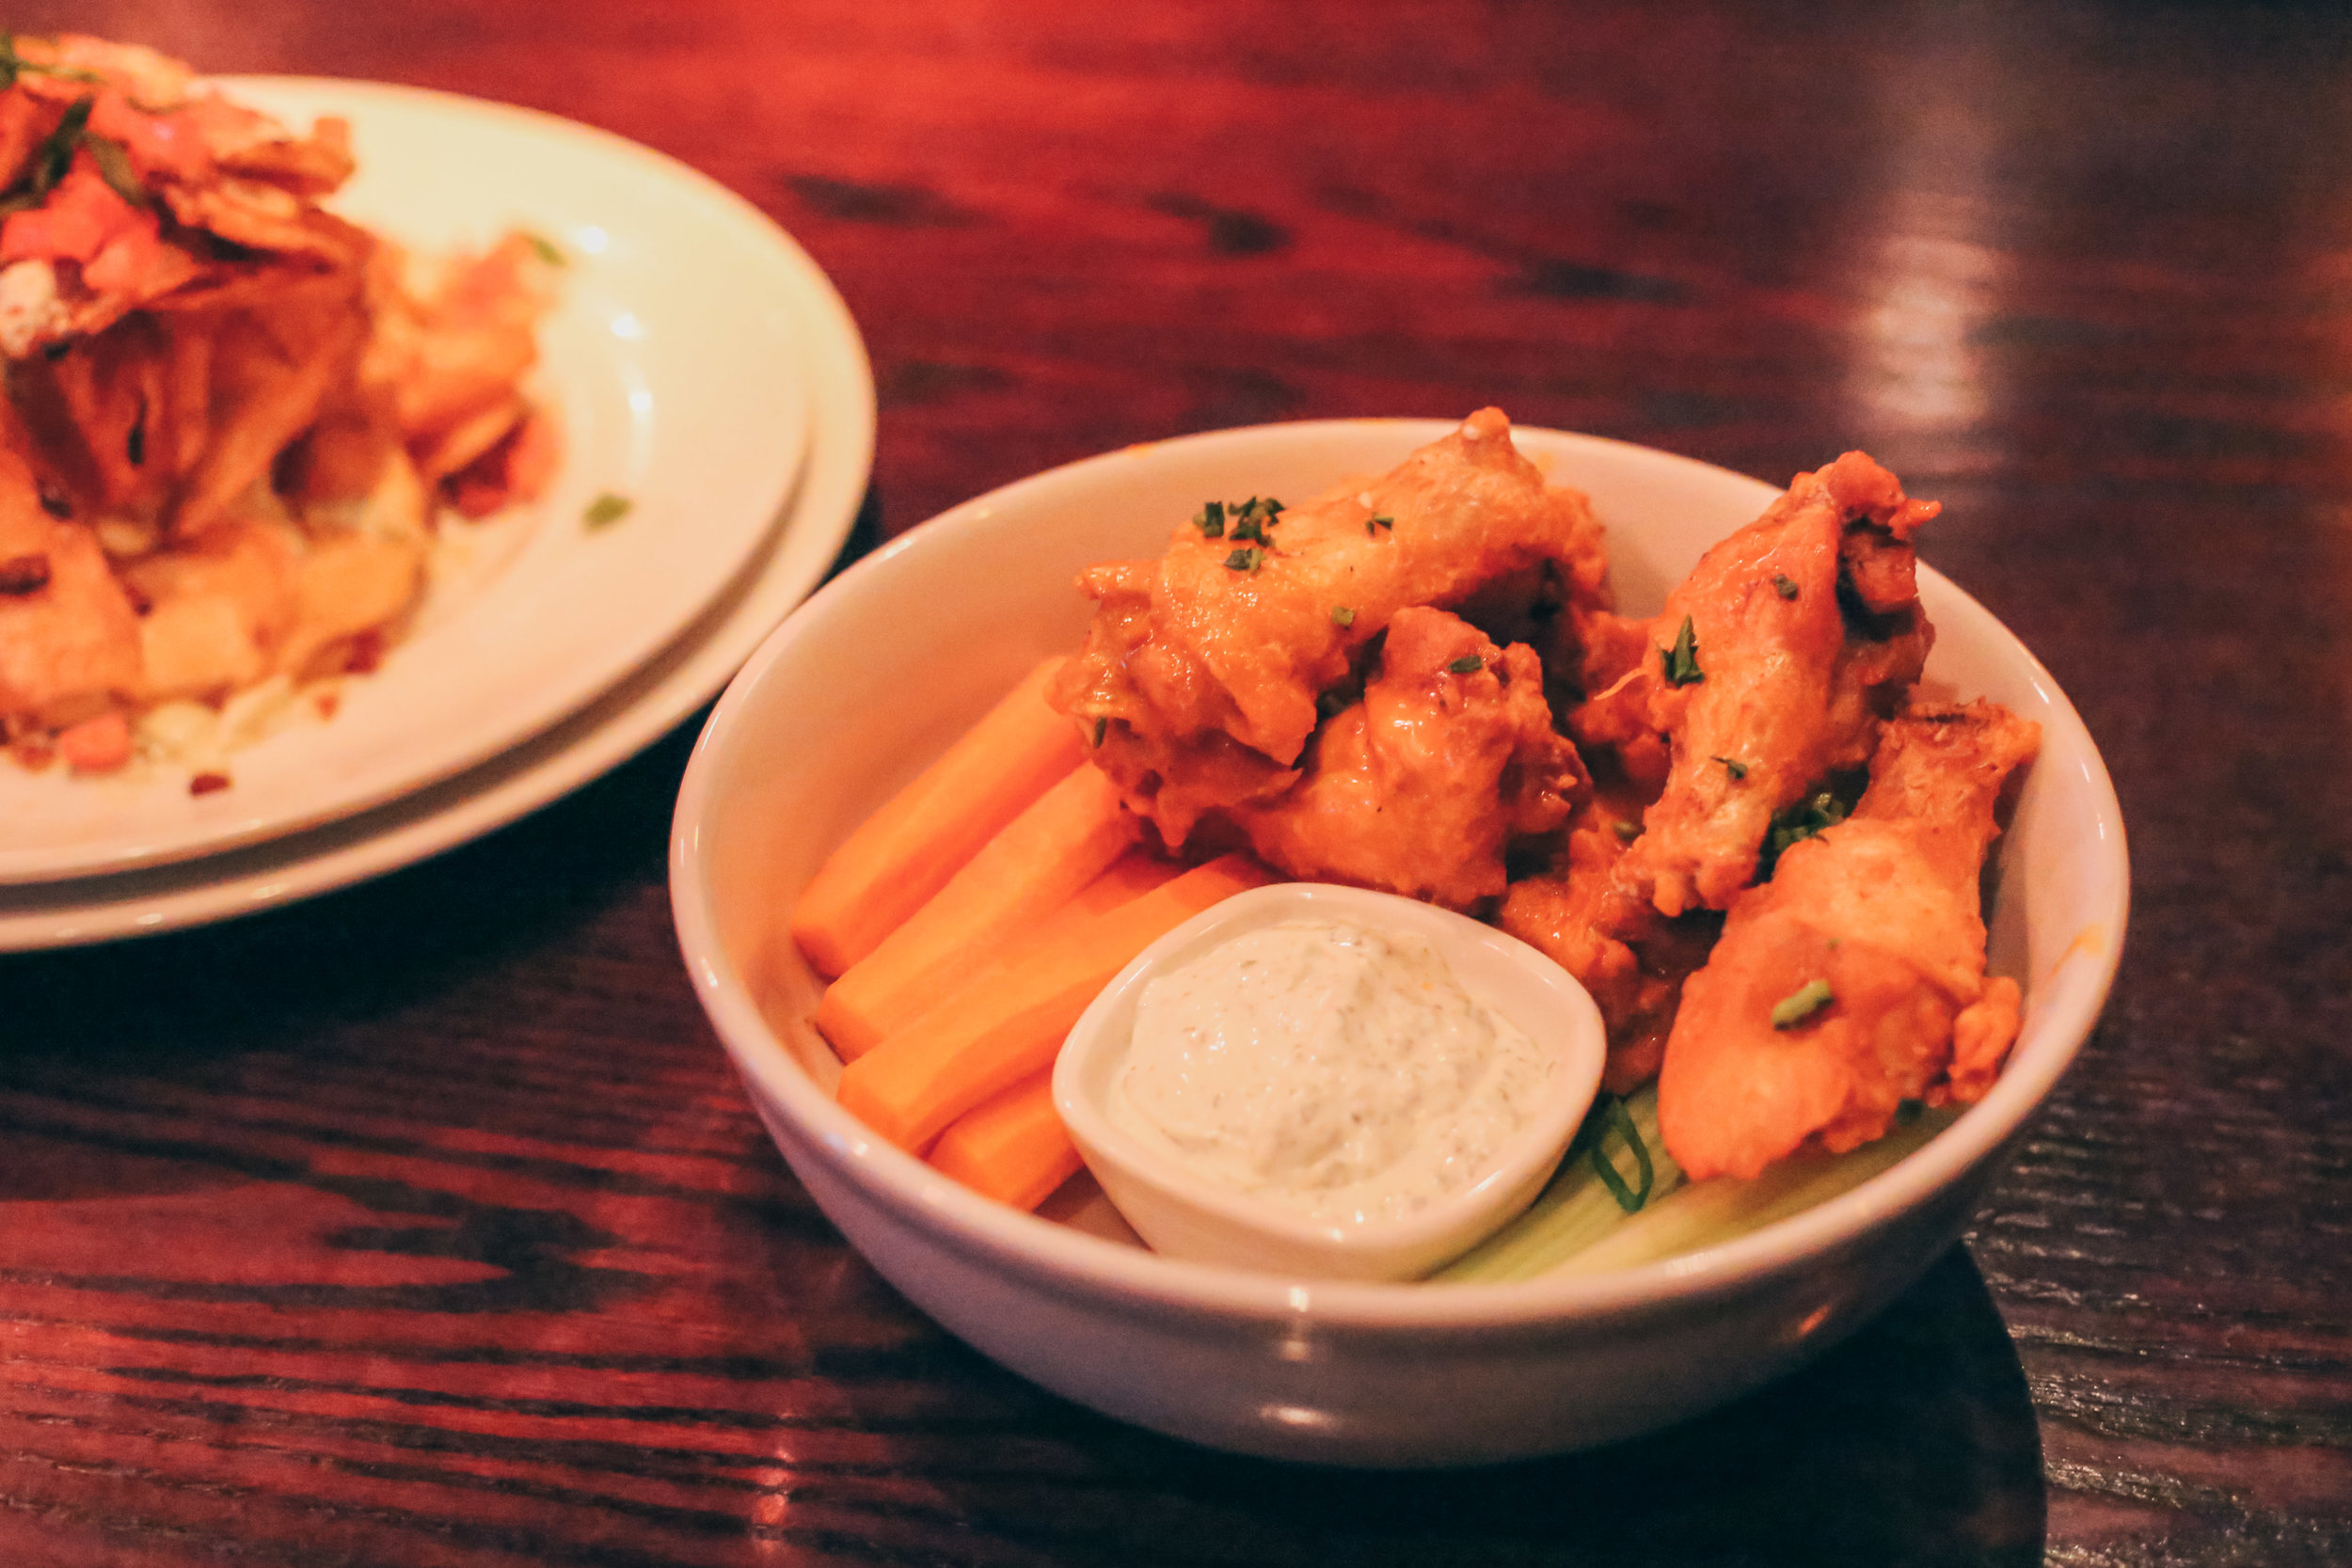 Classic Buffalo-Style Wings, served with carrots, celery and a house-made Gorgonzola dressing